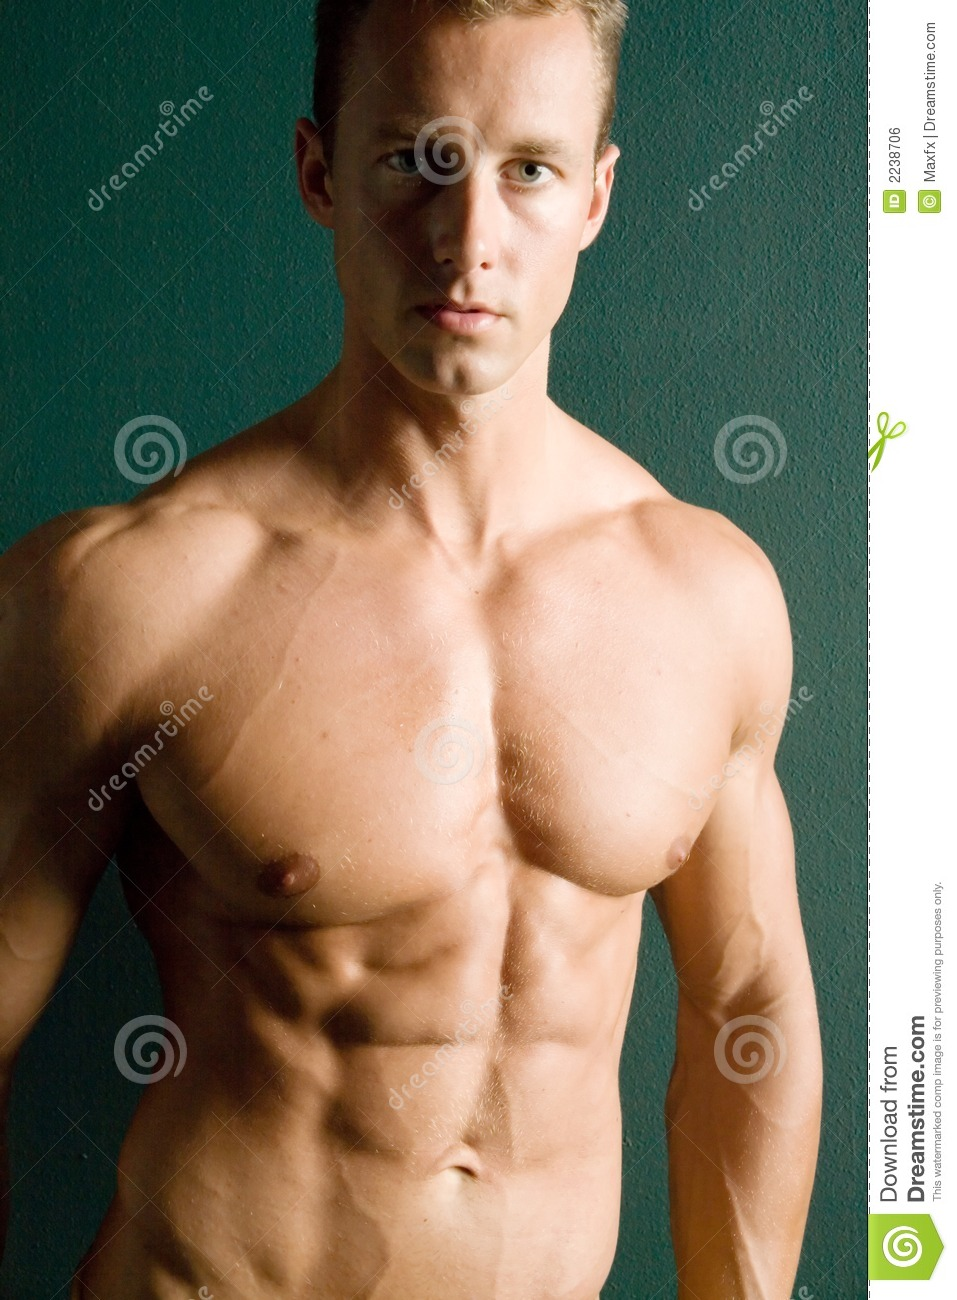 Than men Male model beach images athletic bodies sexy harder keep